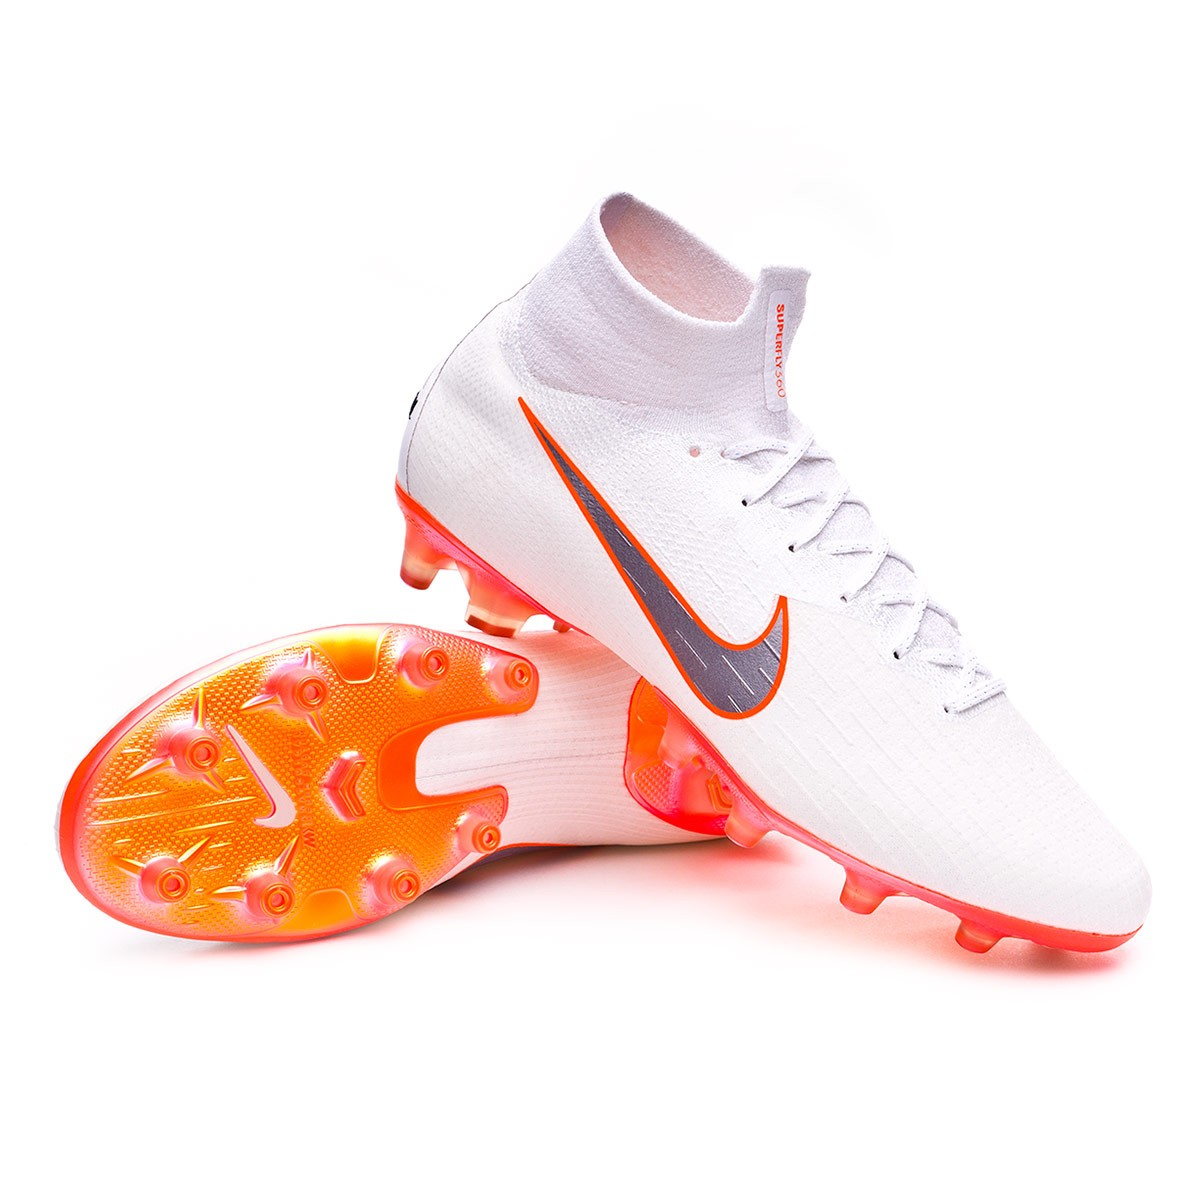 12cd2706e32 Football Boots Nike Mercurial Superfly VI Elite AG-Pro White ...